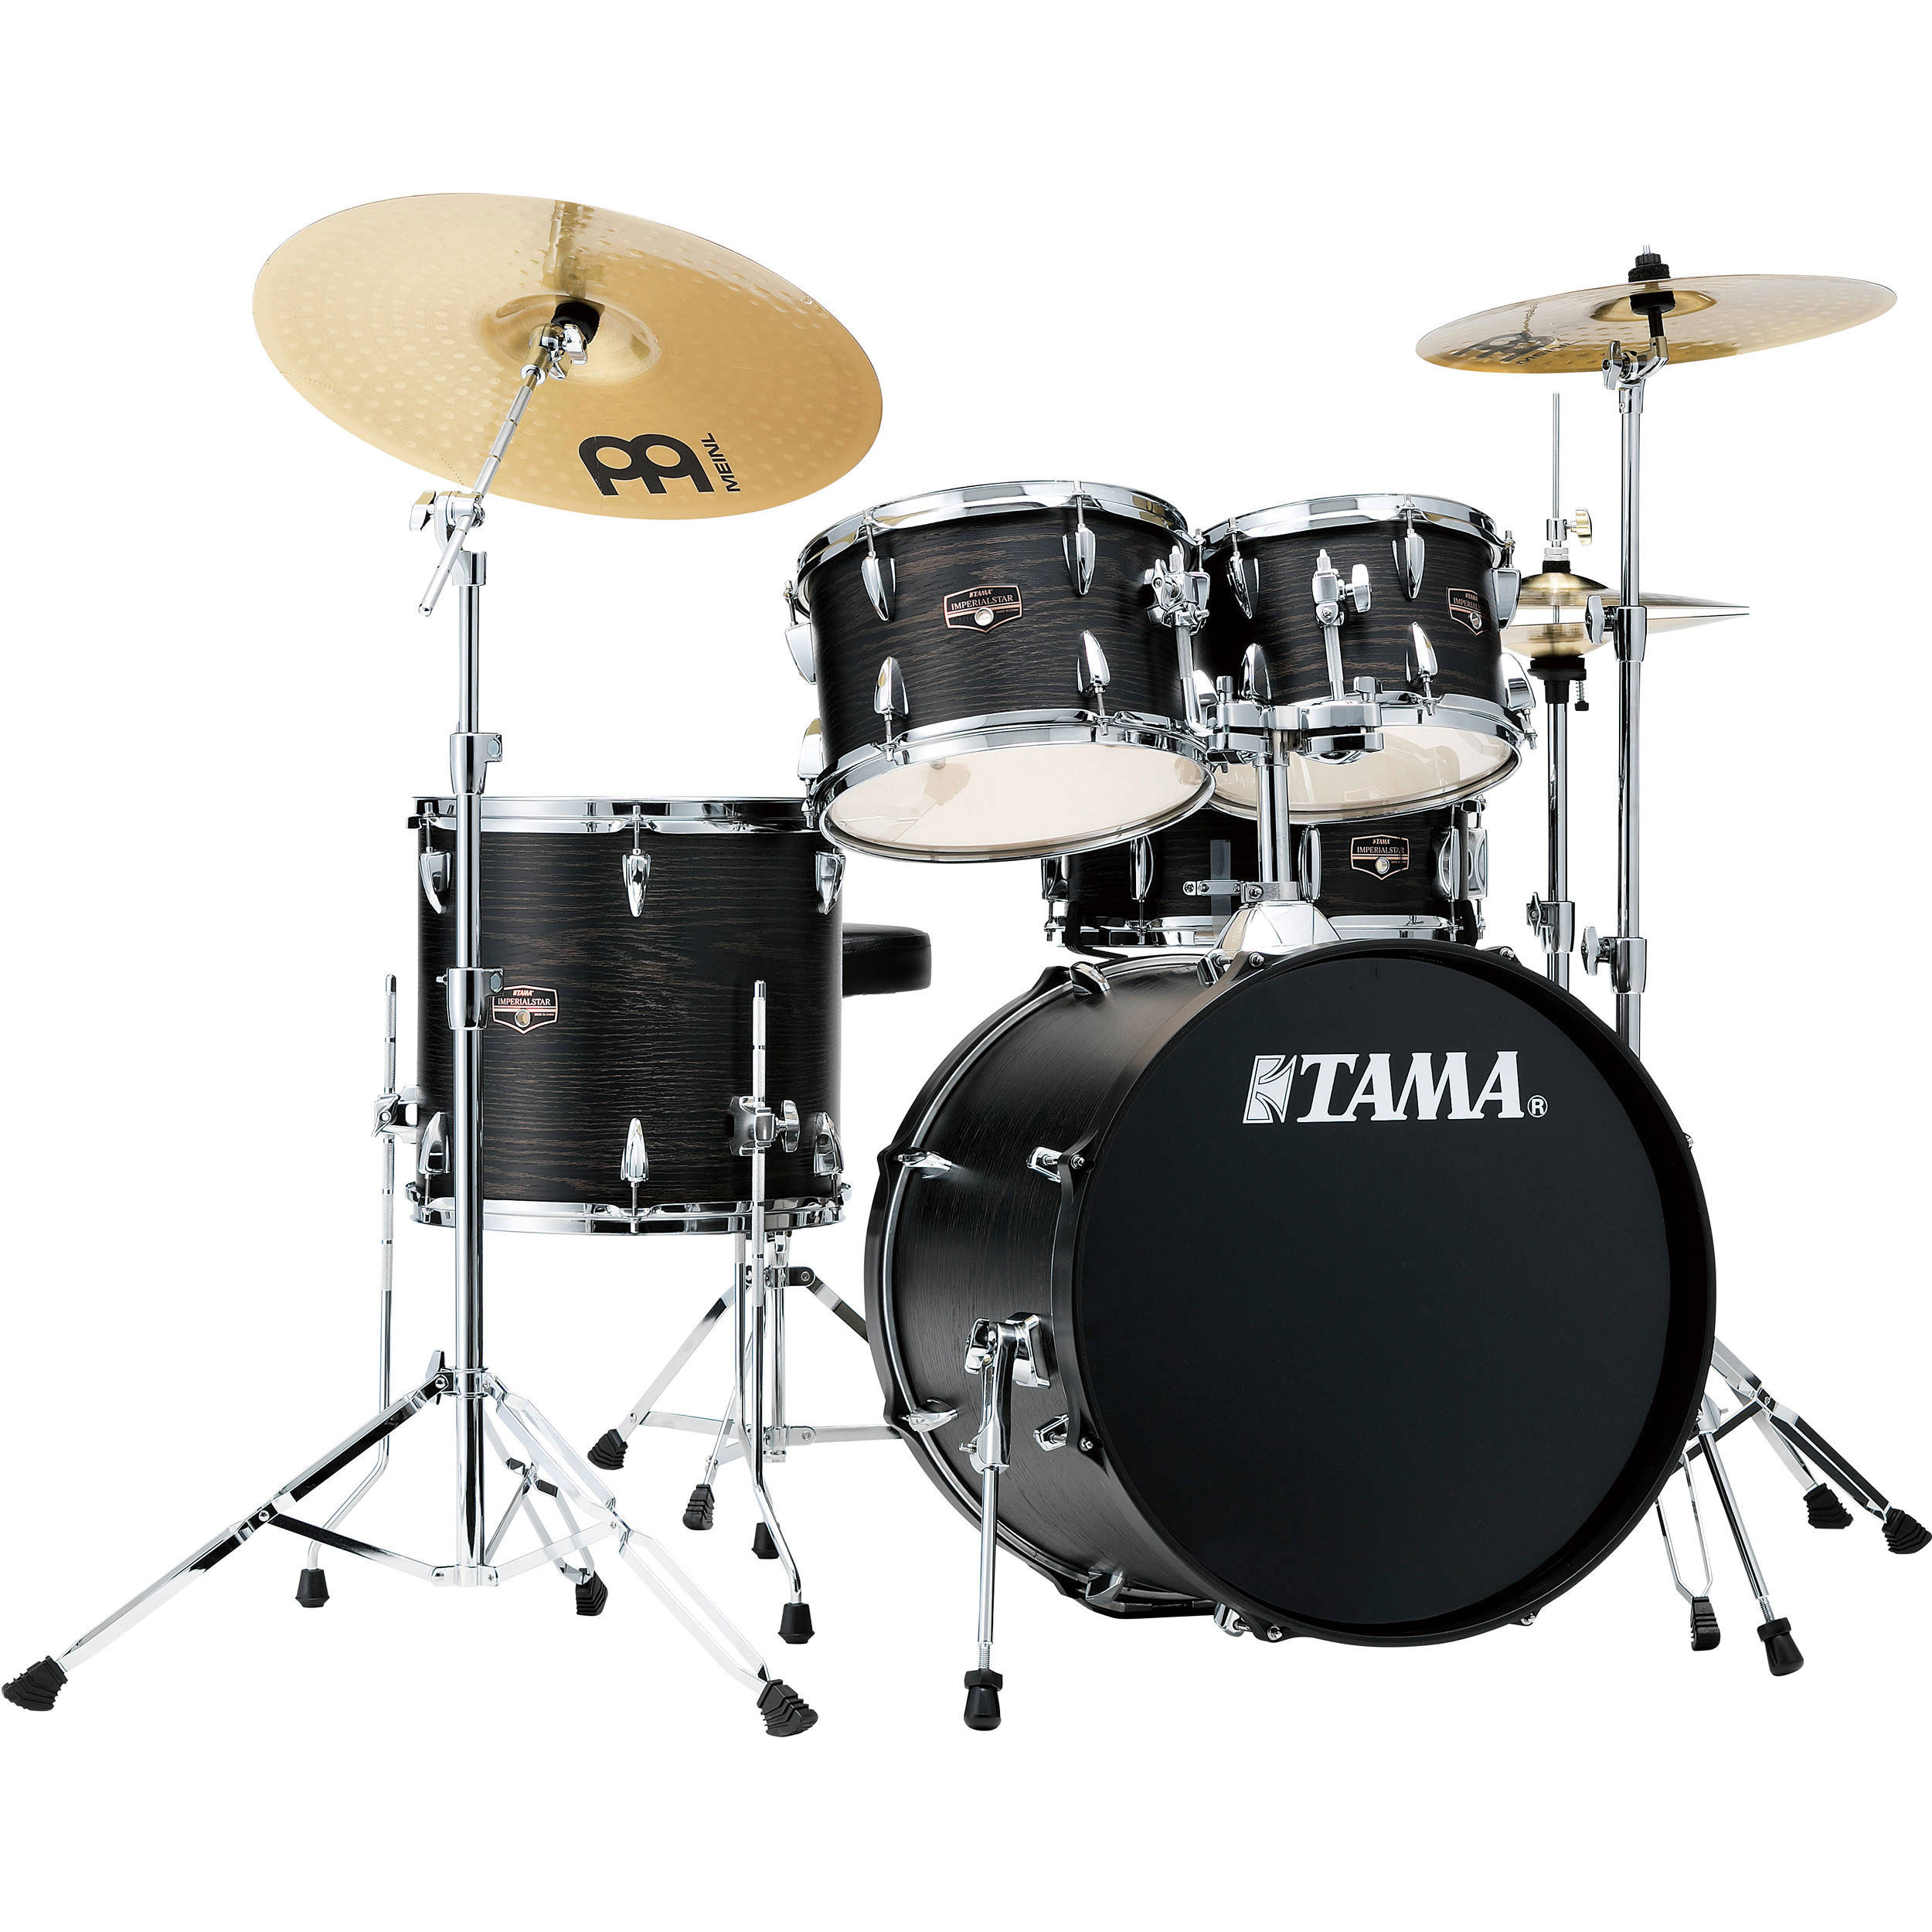 """Tama Imperialstar 5-Piece Drum Set with Hardware and Cymbals (20"""" Bass, 10/12/14"""" Toms, 14"""" Snare)"""